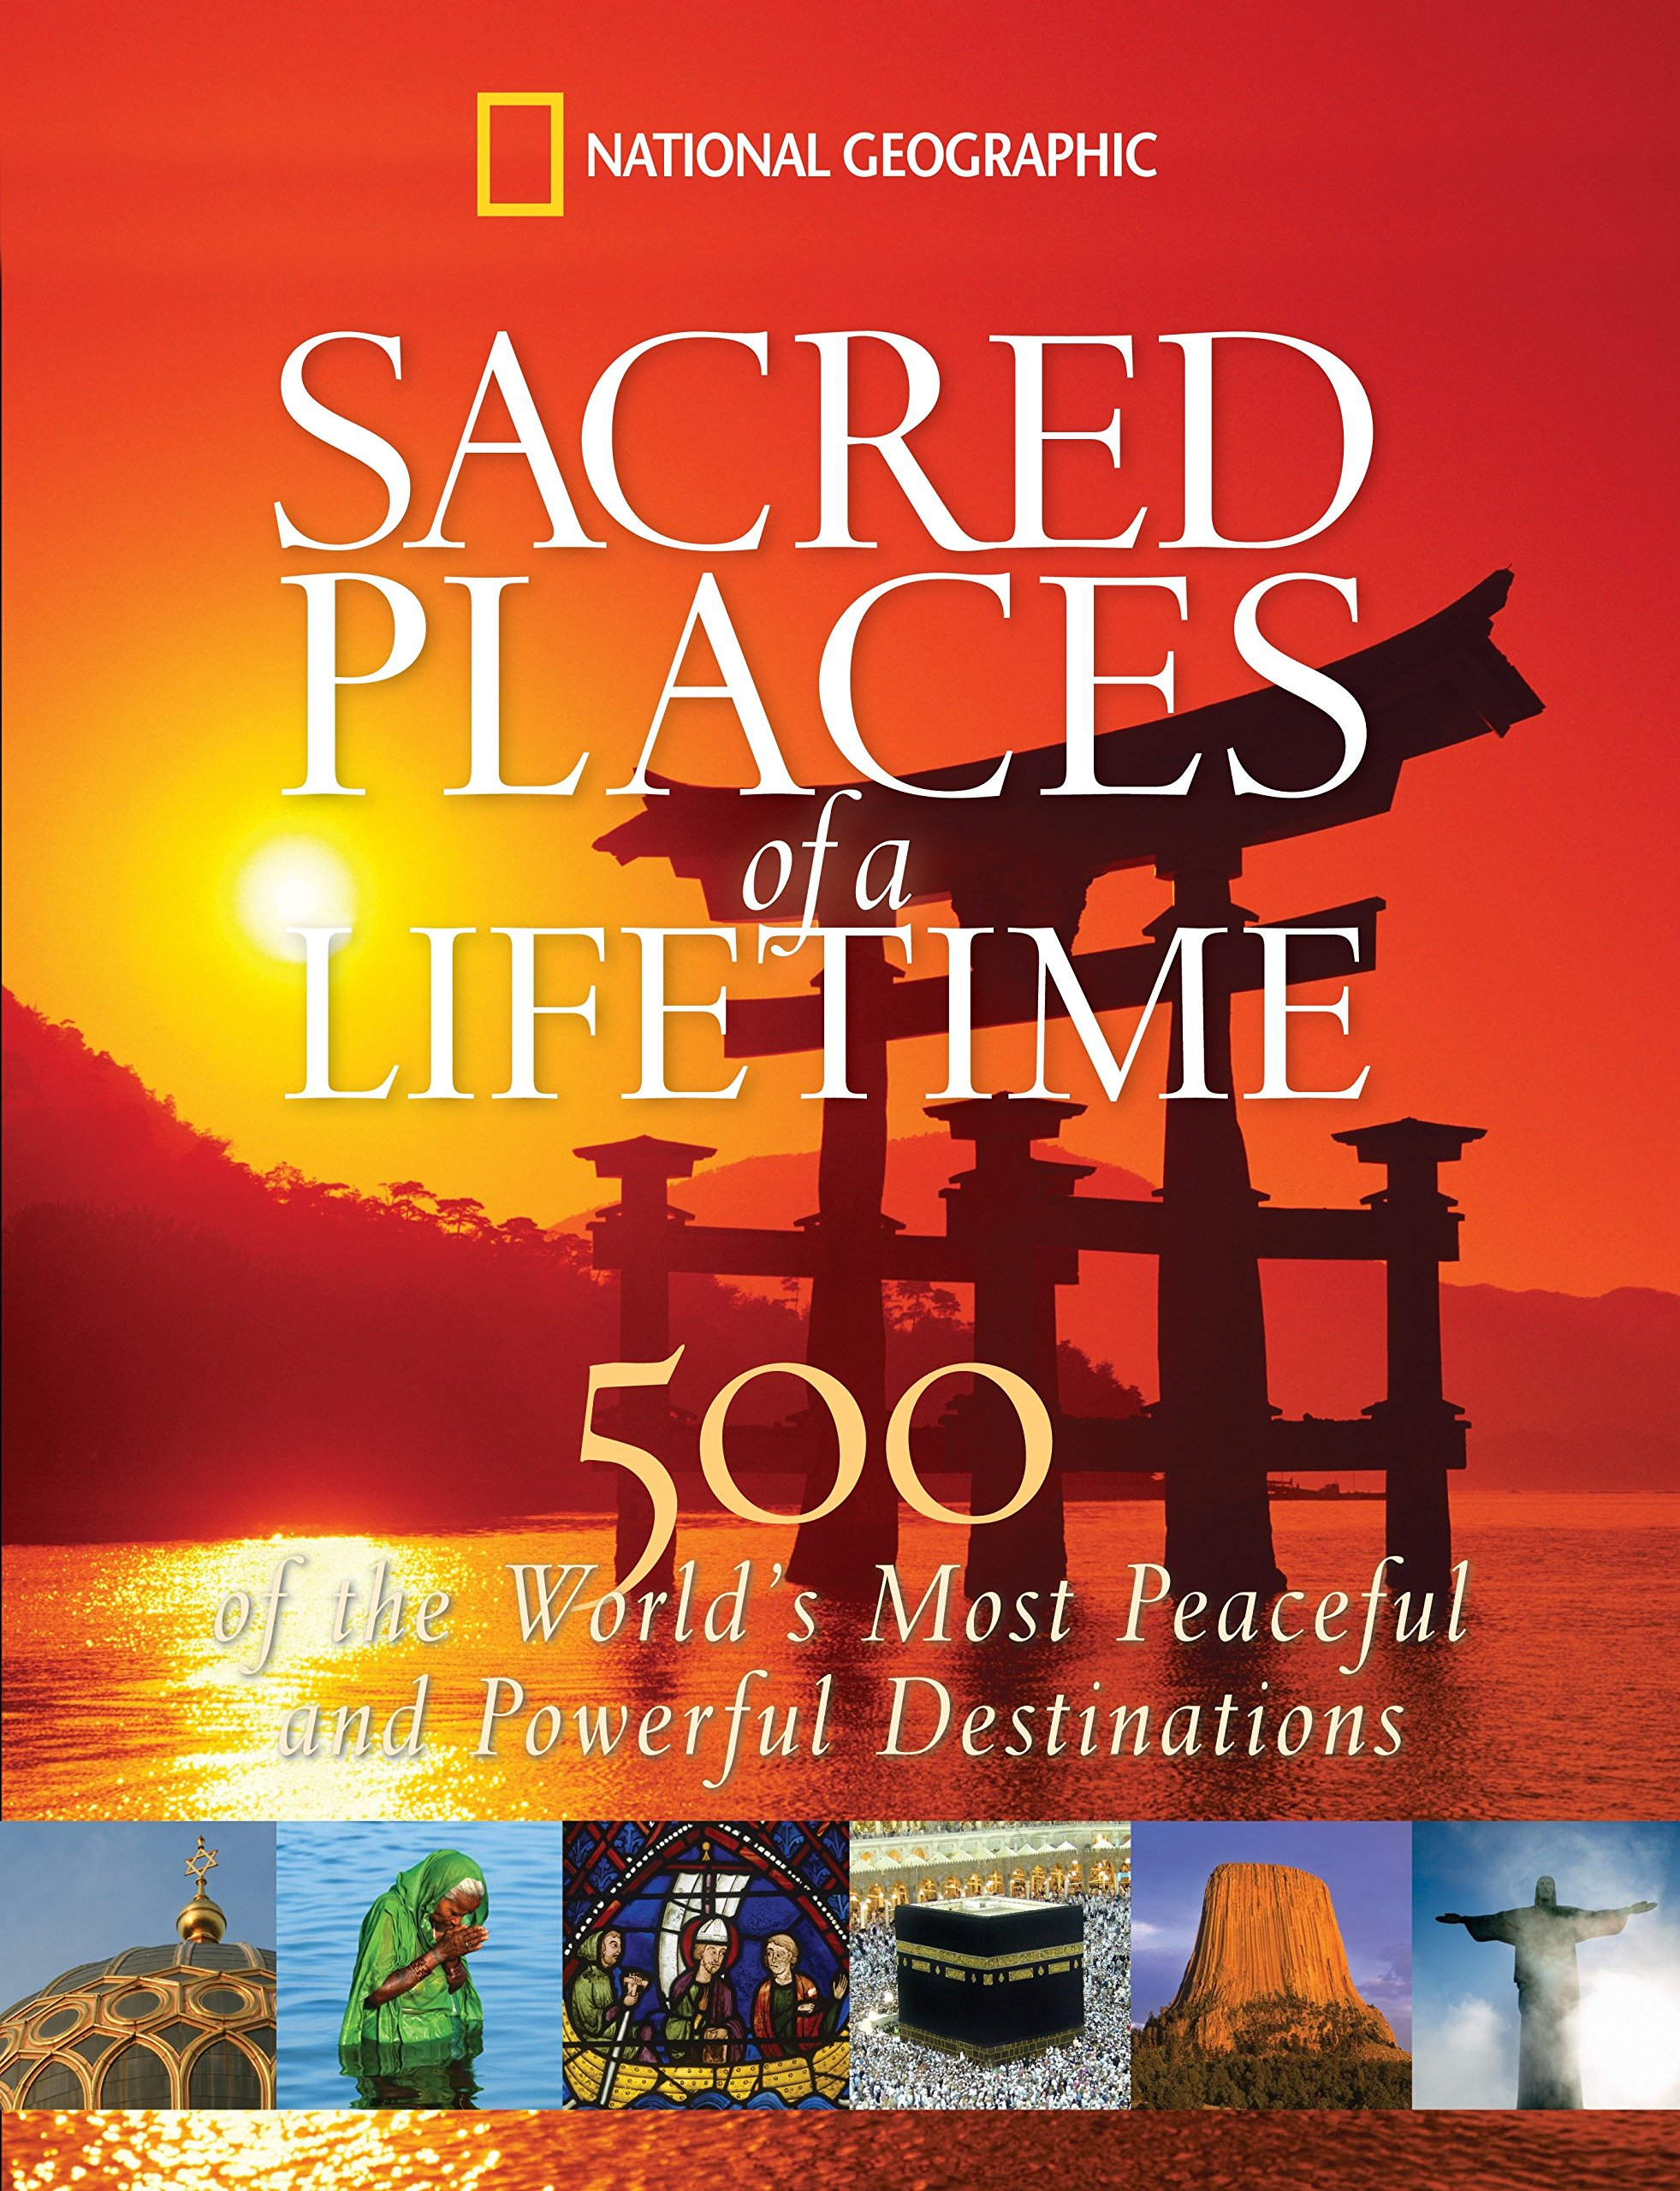 Sacred Places of a Lifetime: 500 of the World's Most Peaceful and Powerful  Destinations: National Geographic: 9781426203367: Amazon.com: Books